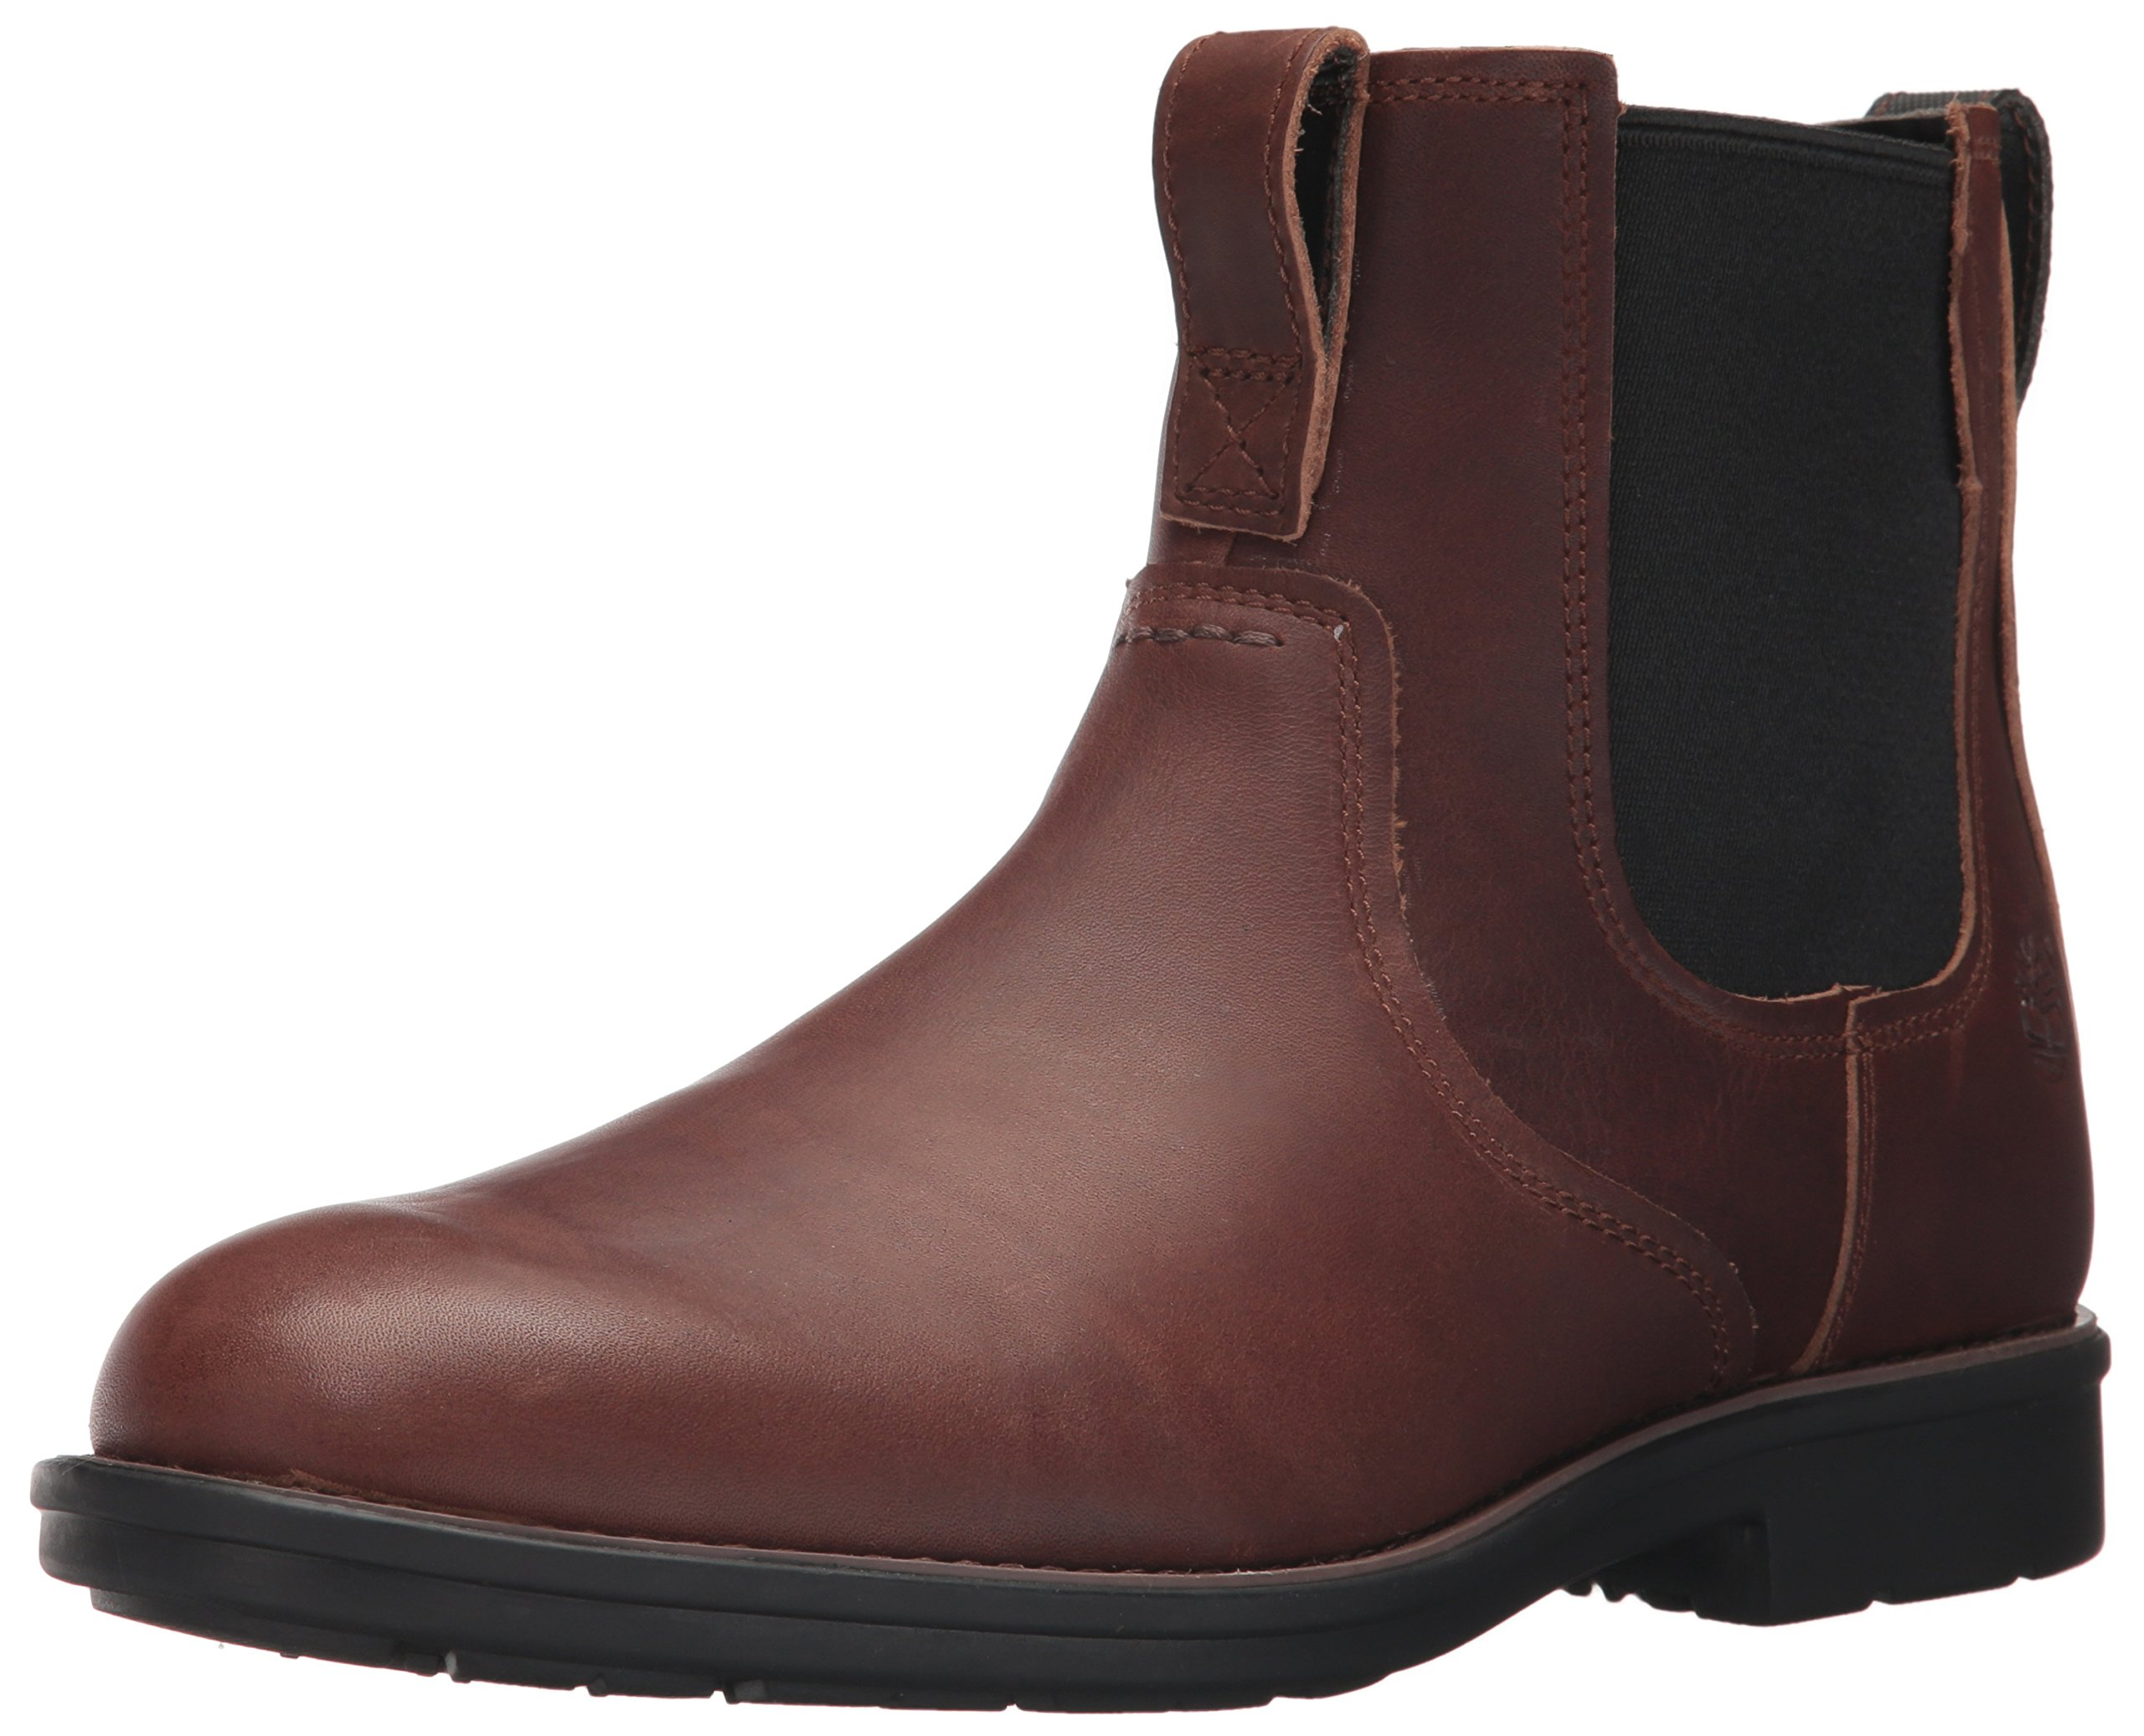 Timberland Men's Carter Notch Chelsea Boot, Dark Brown Full Grain, 12 D(M) US by Timberland